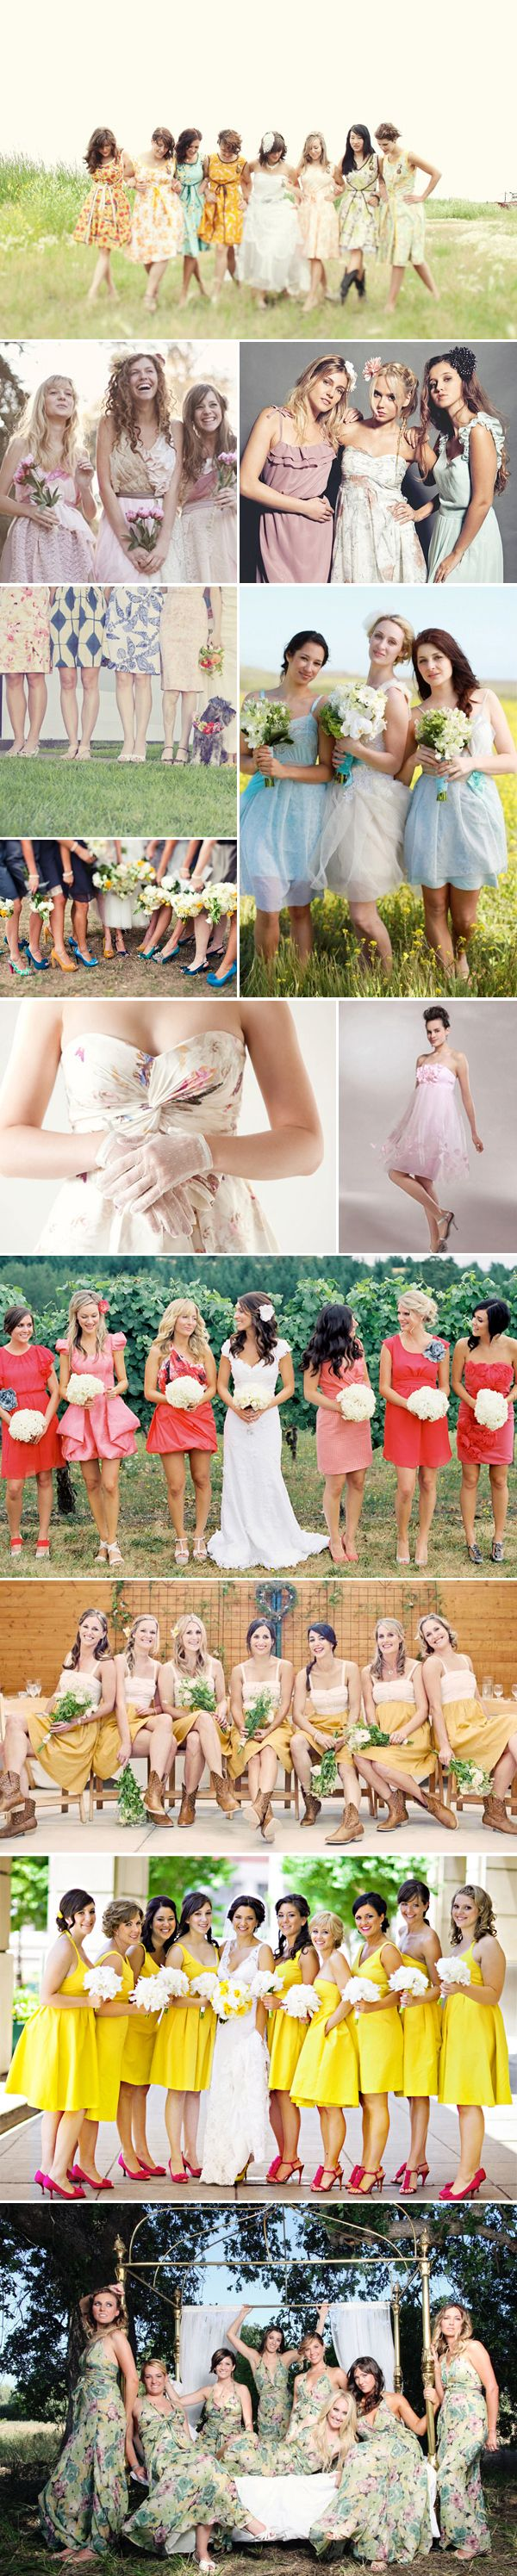 Fashion Inspiration for Bridesmaids & Groomsmen